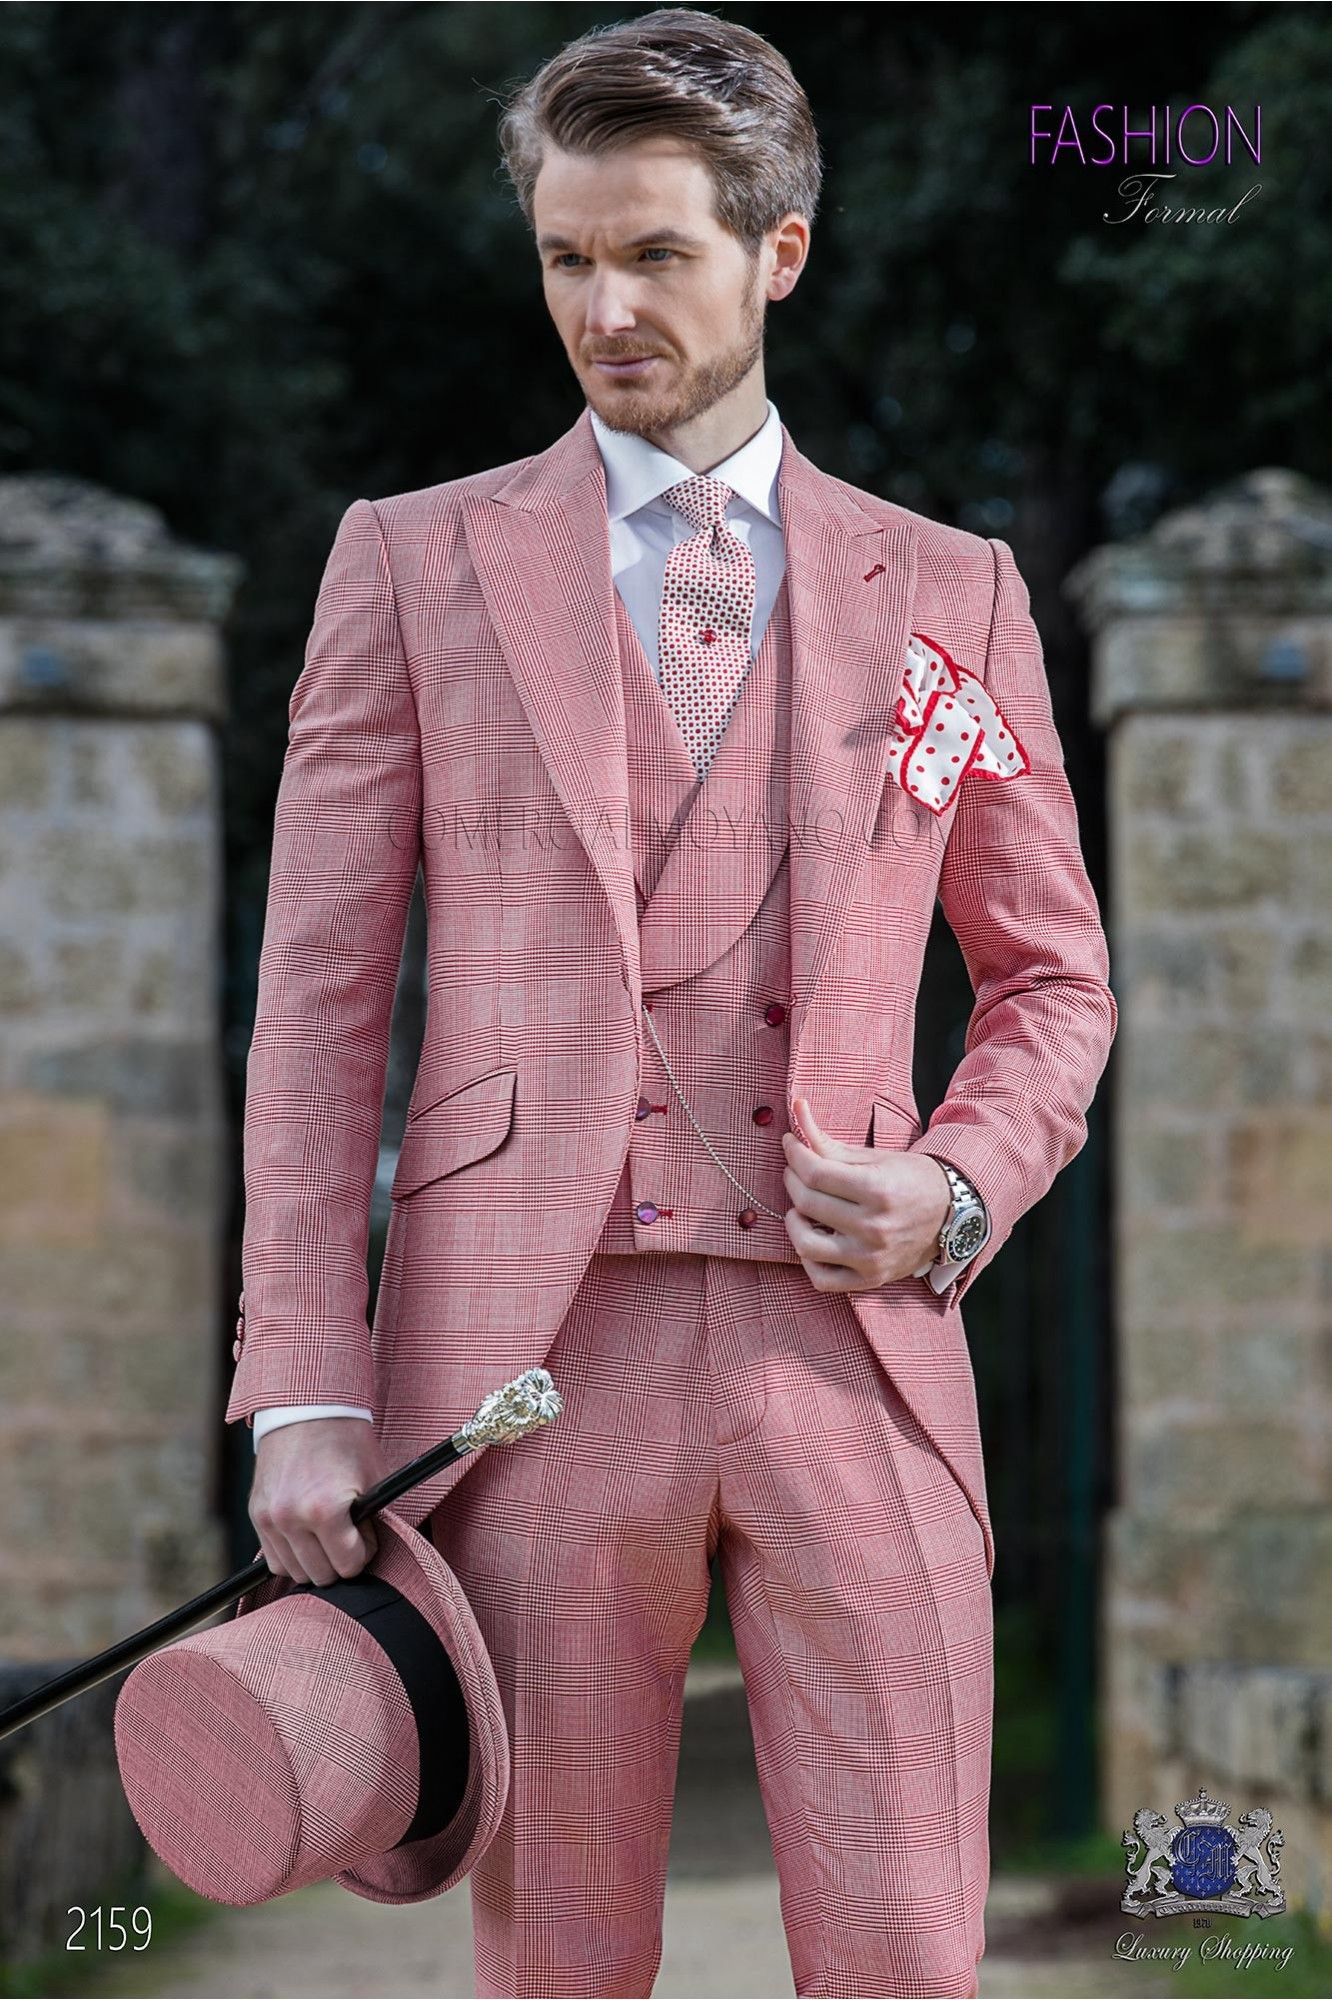 Italian short-tailed wedding suit Red Prince of Wales model 2159 Ottavio Nuccio Gala